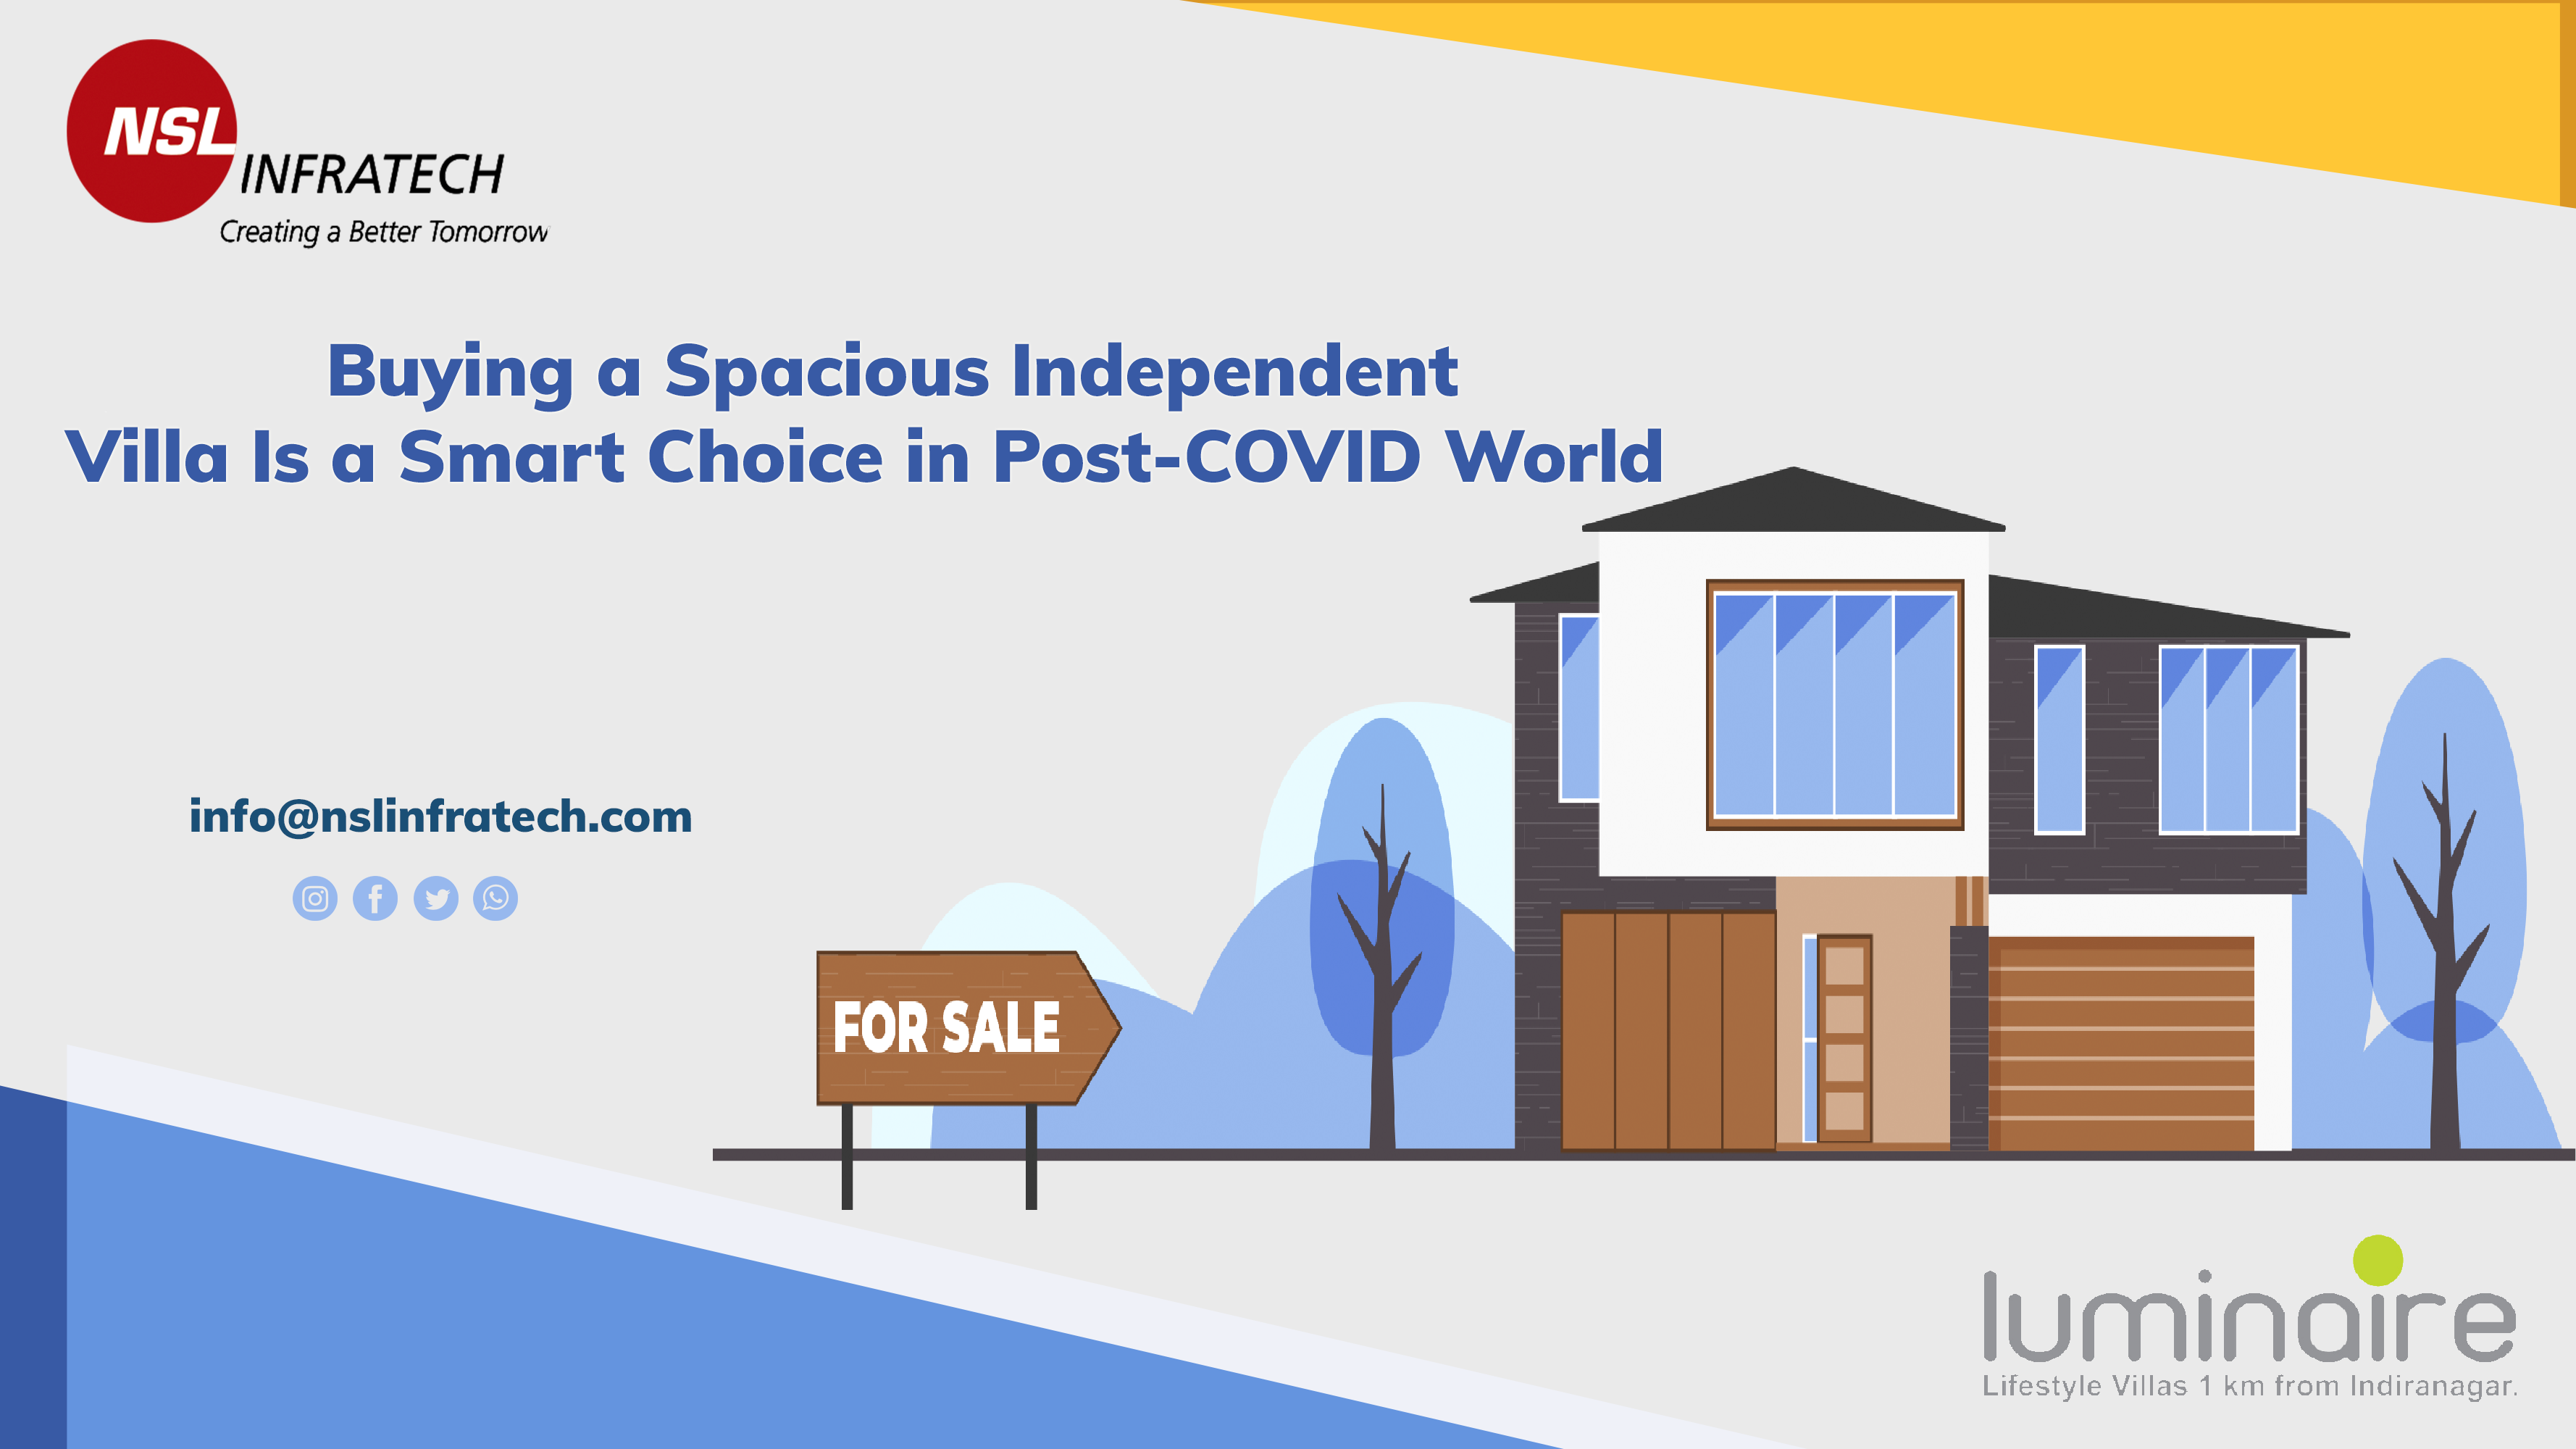 4 Reasons Why Buying a Spacious Independent Villa Is a Smart Choice in Post-COVID World